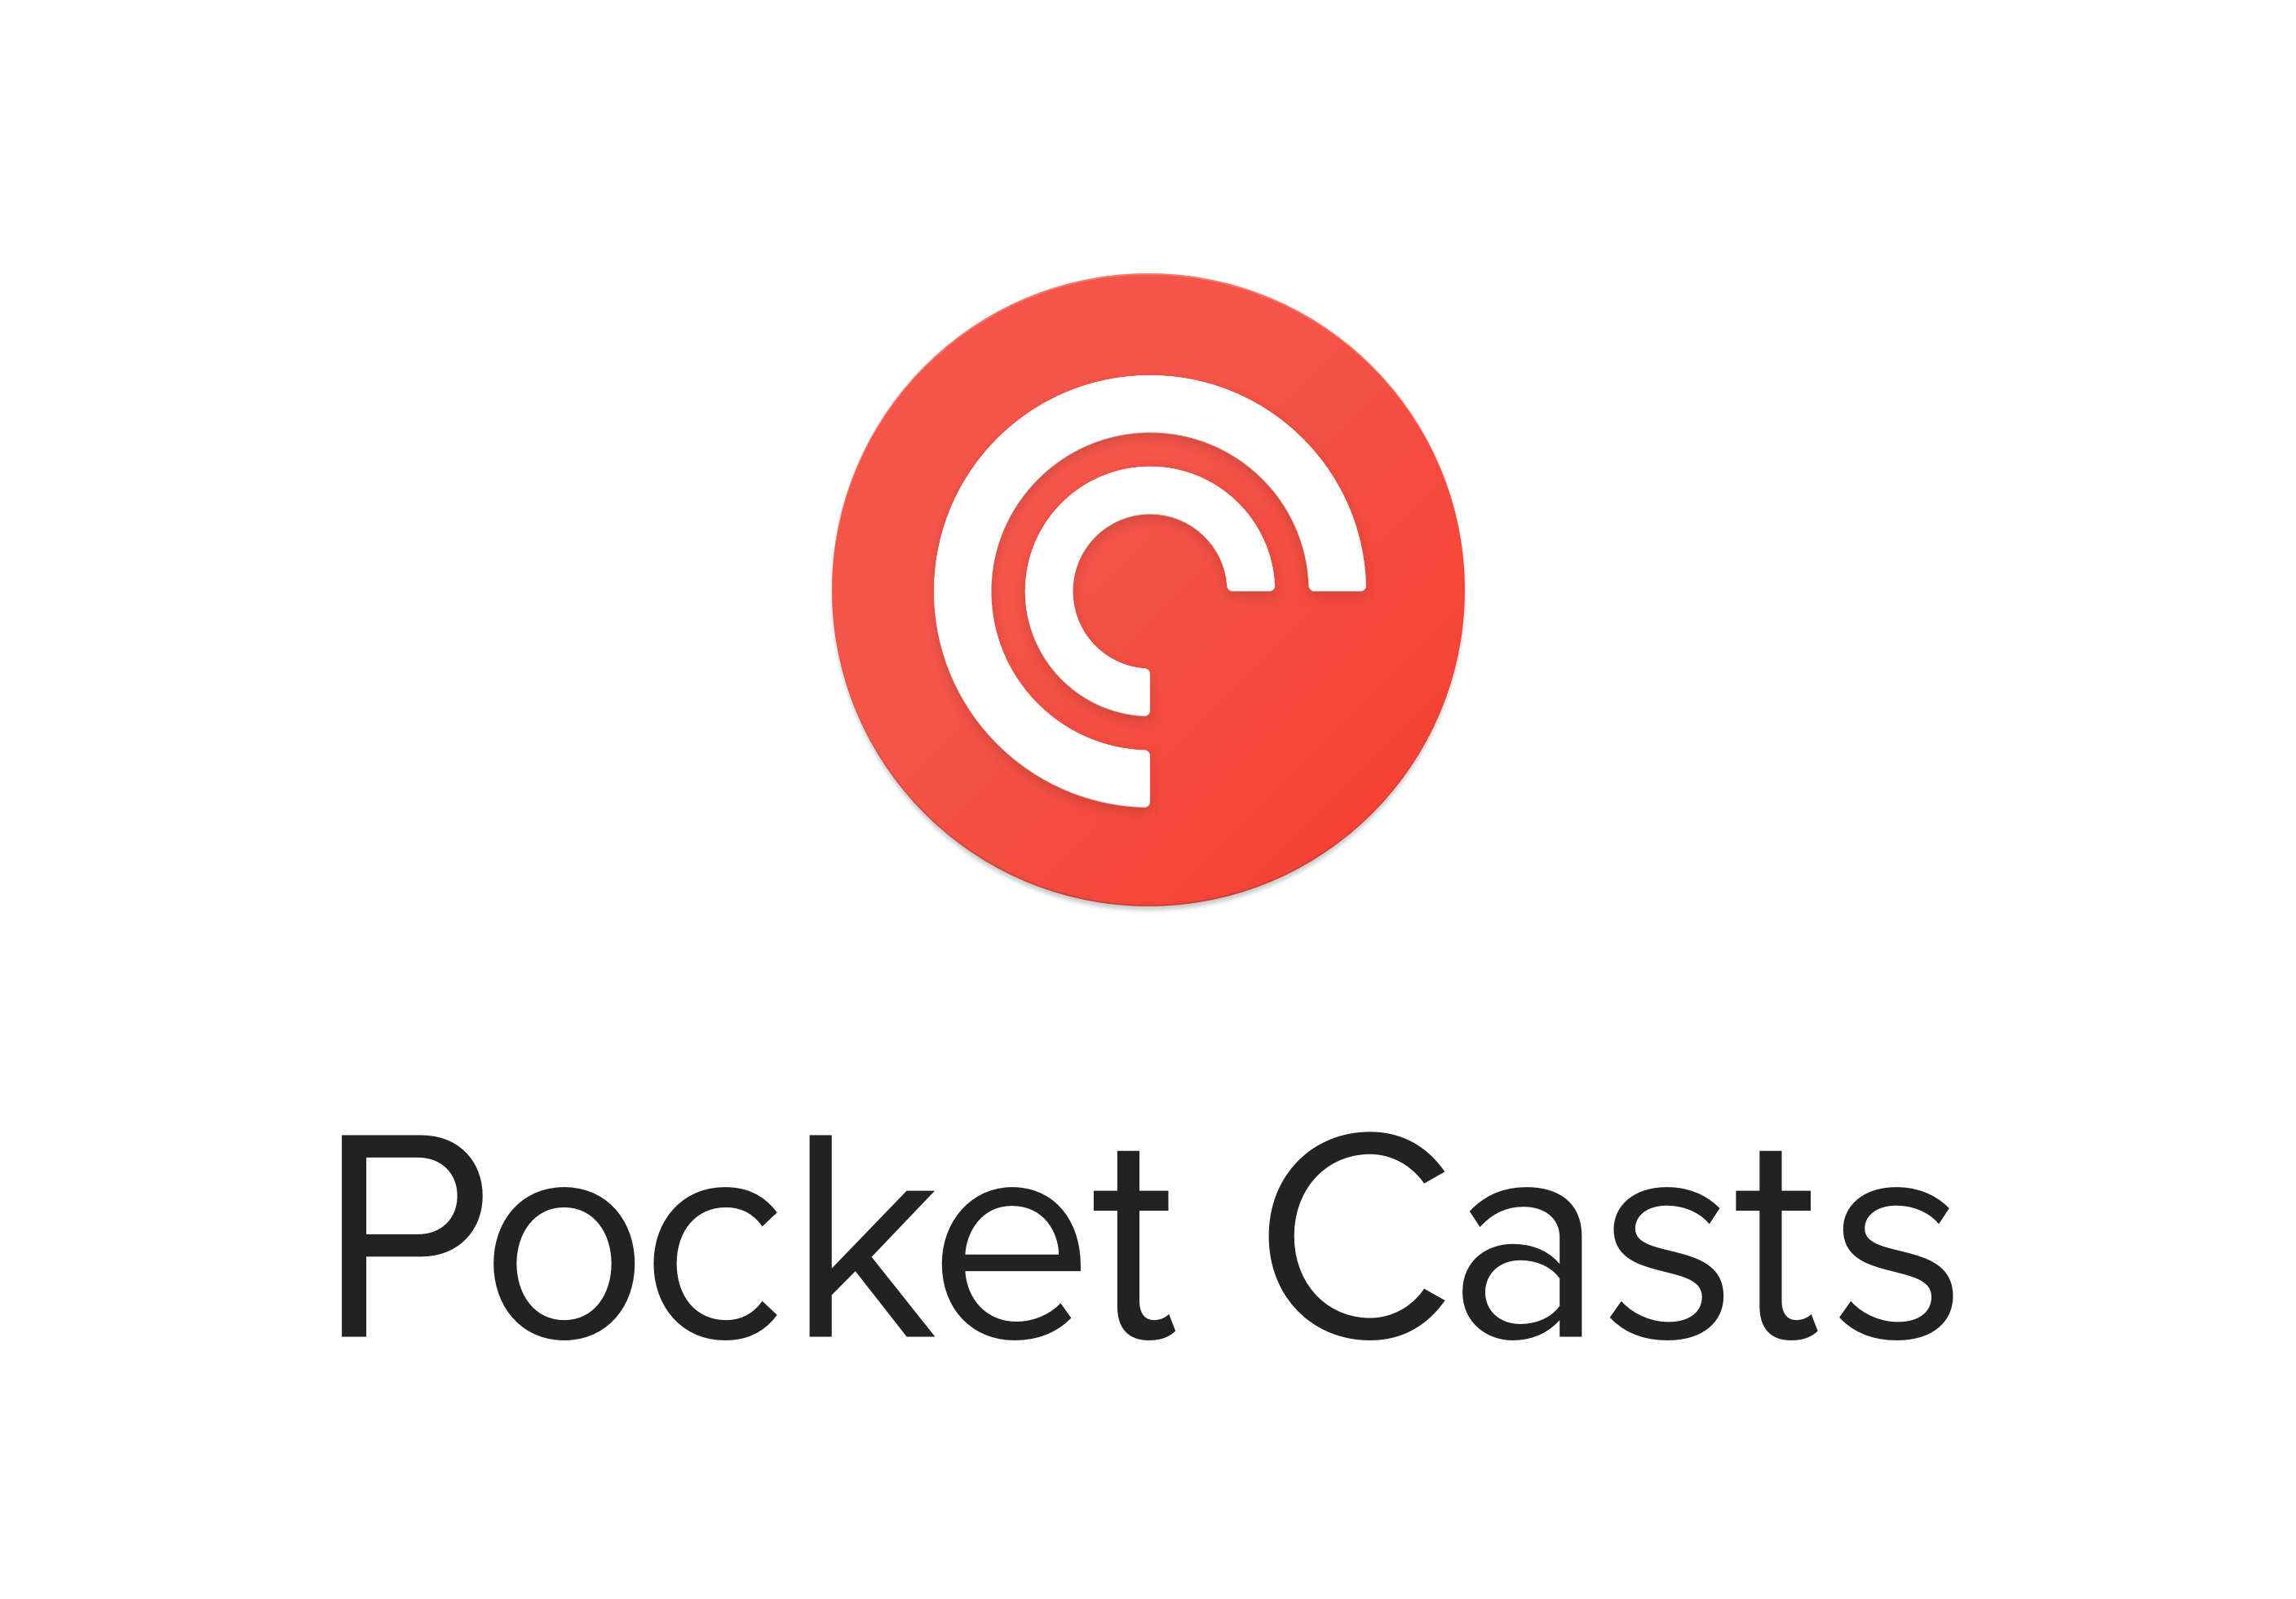 Learn About Pocket Casts Apk And Download Podcasts It Cast Social Science